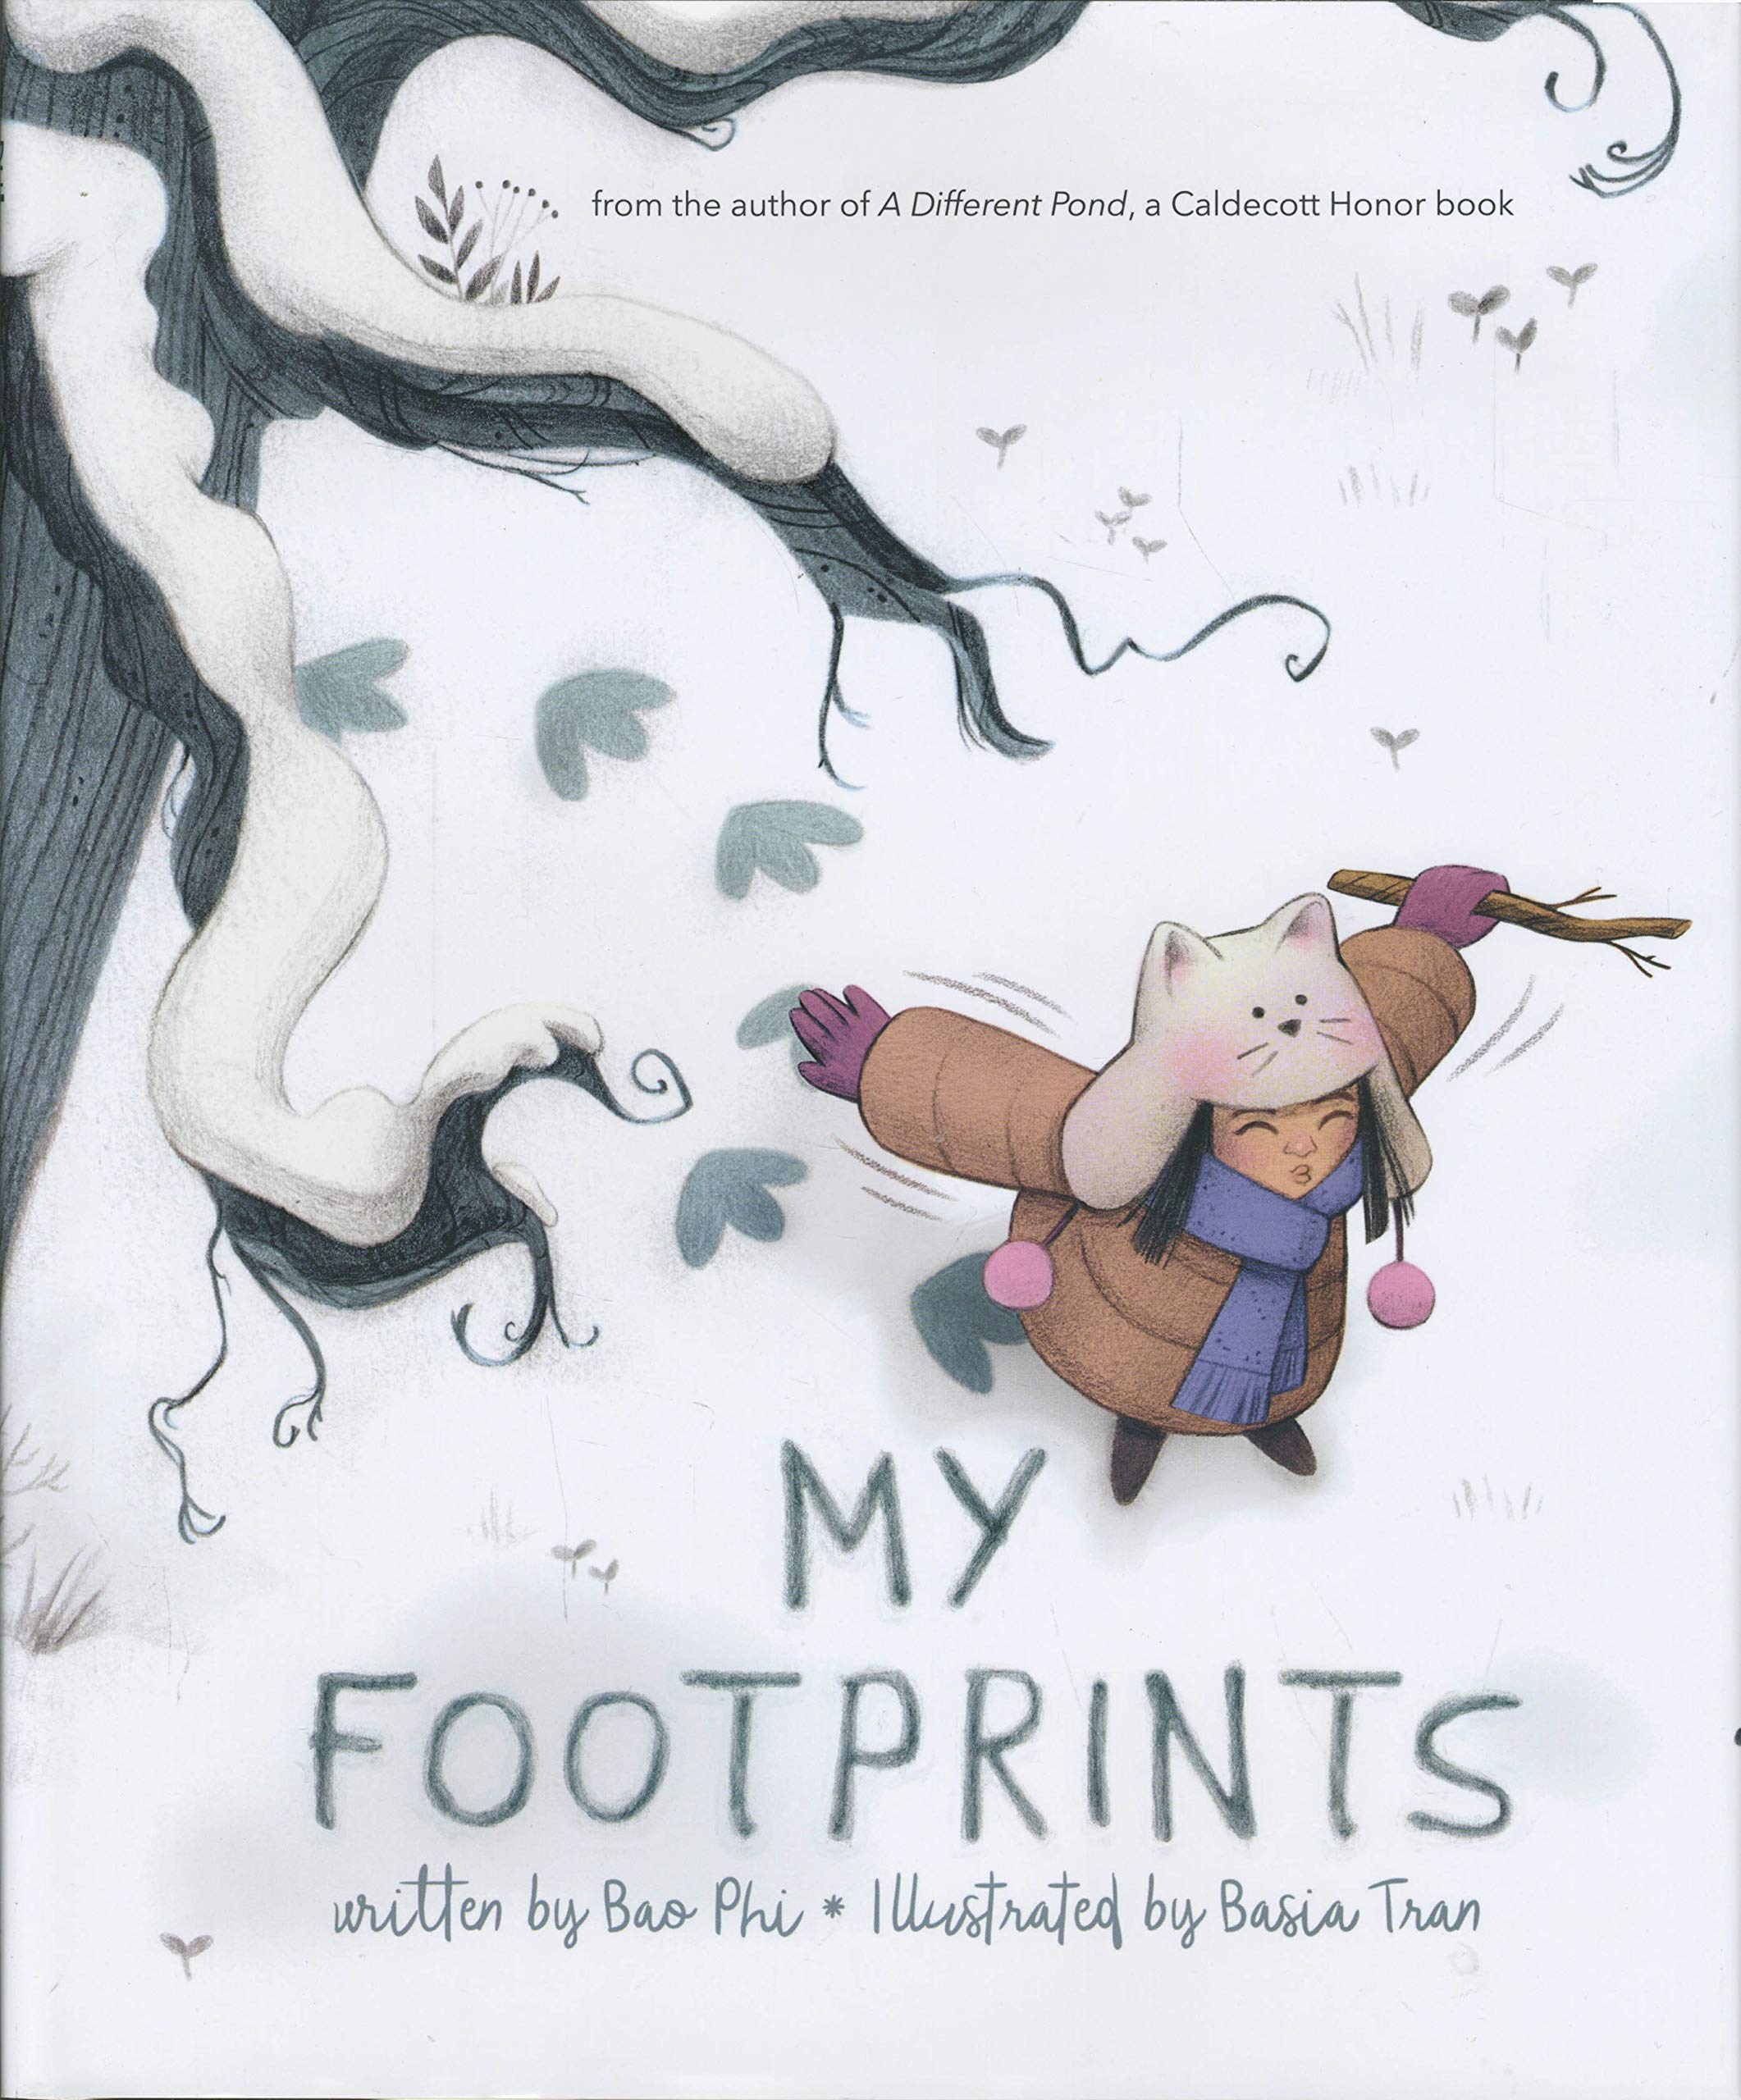 Couverture de My Footprints de Bao Phi